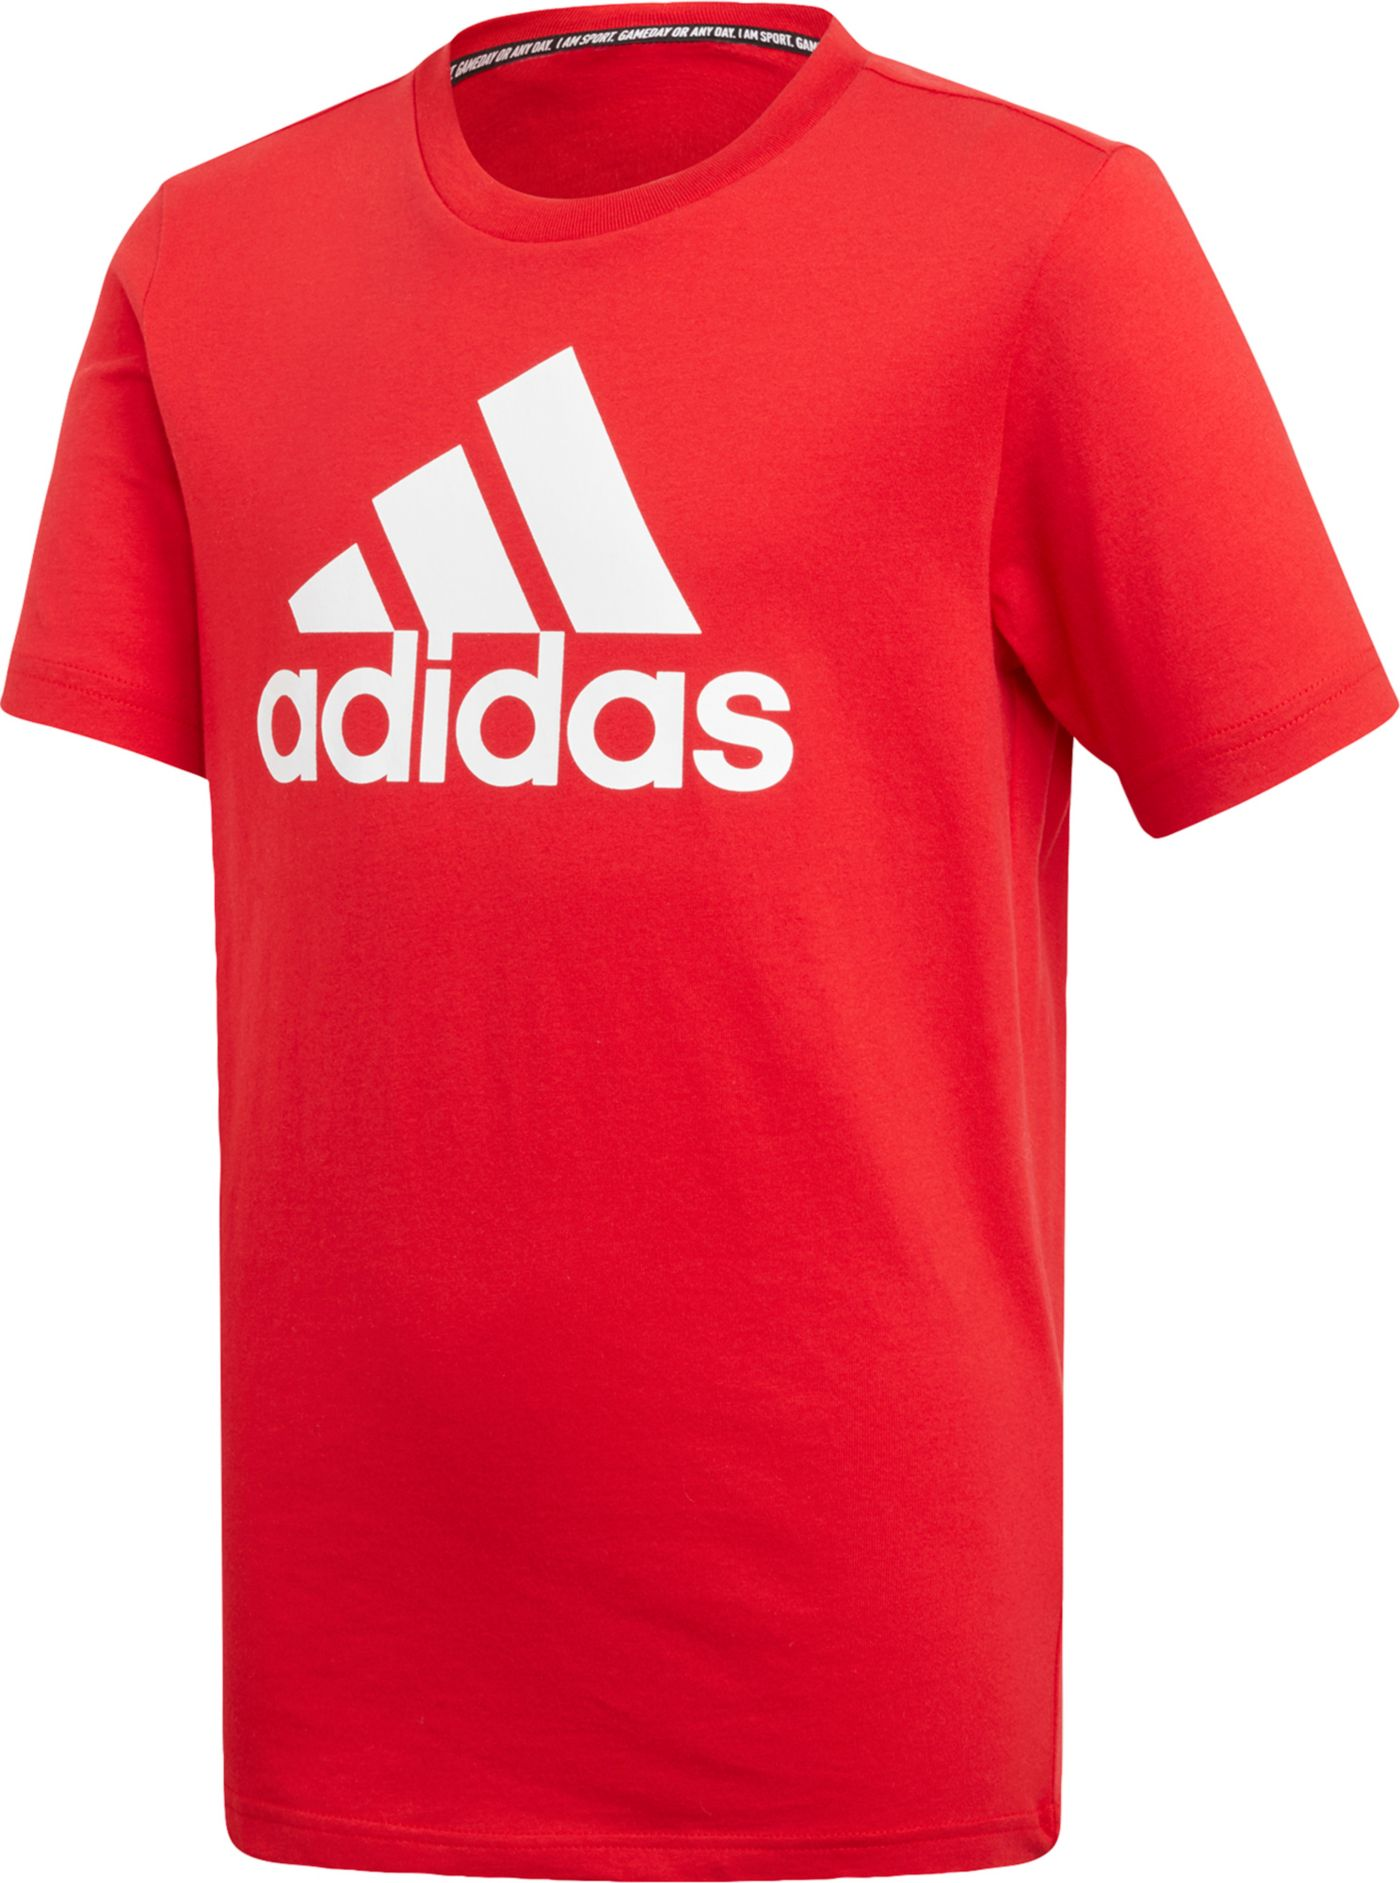 adidas Boys' Must Haves Badge Of Sports T-Shirt